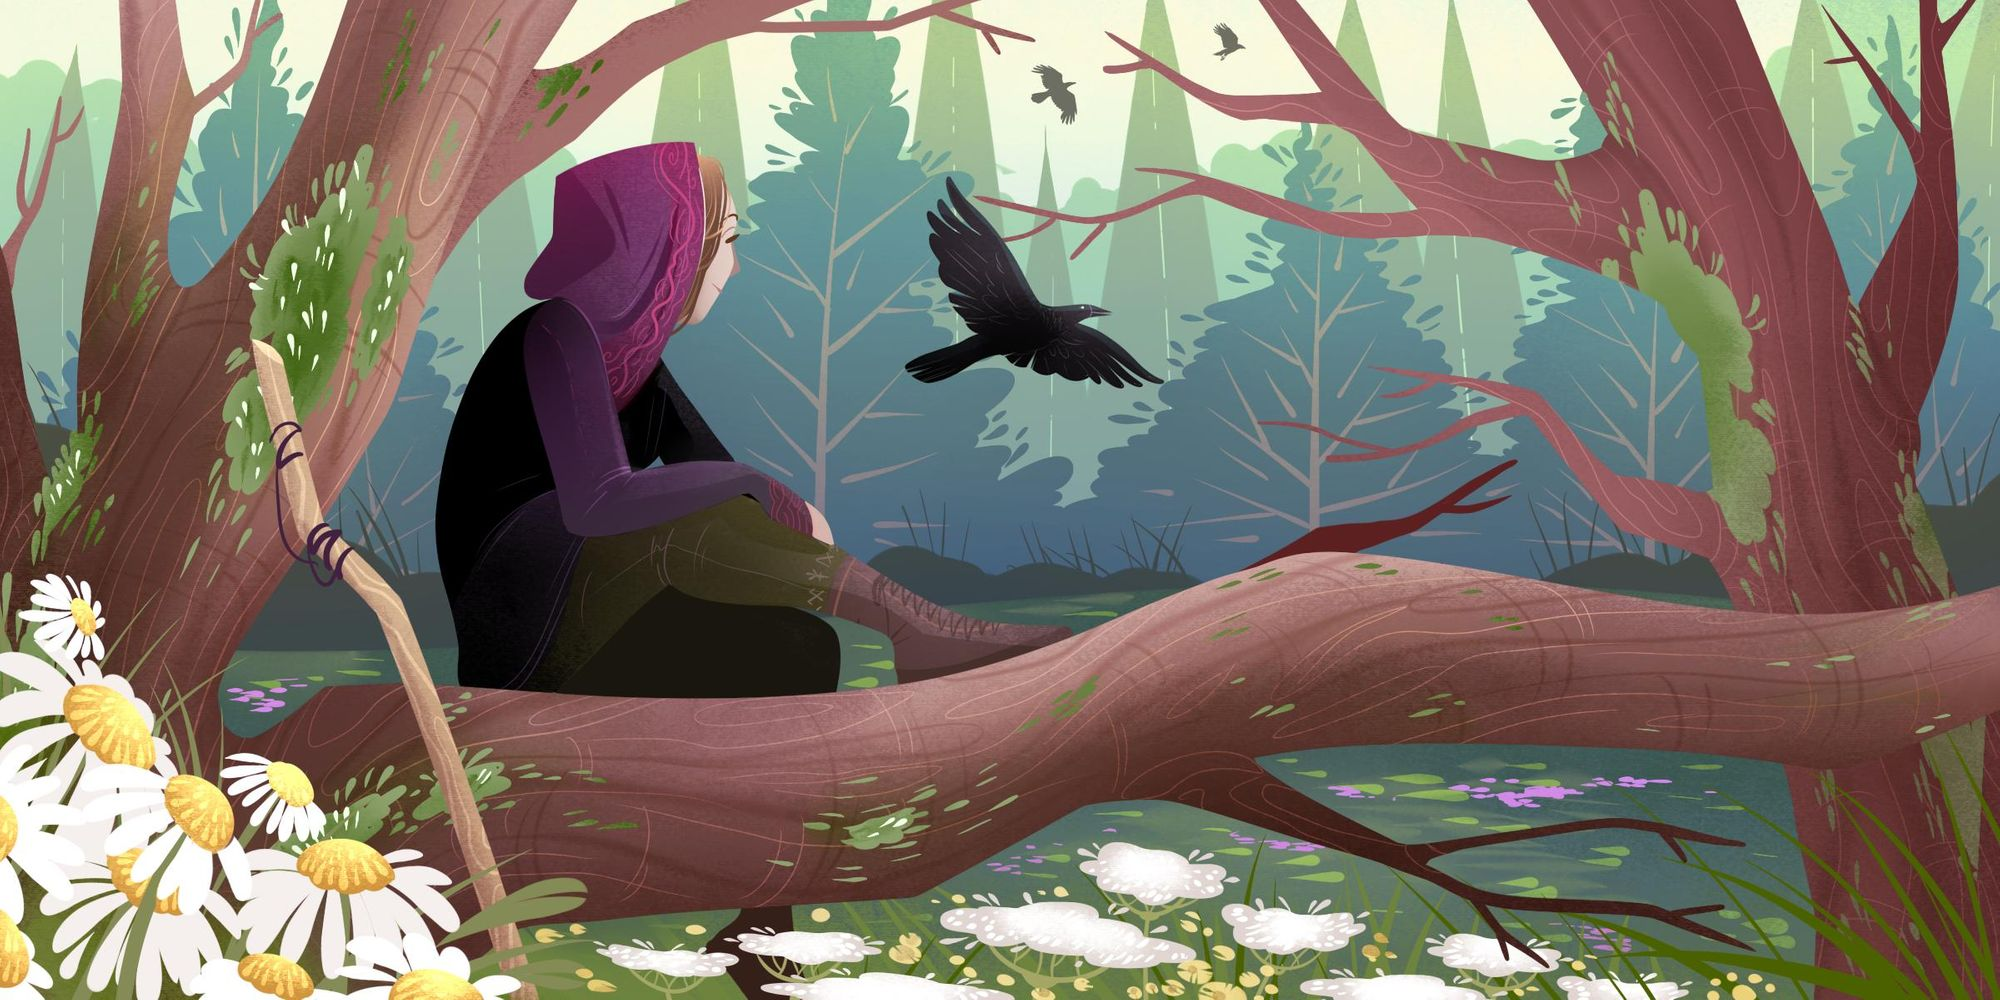 A digital illustration of a hooded figure sitting on a tree branch in a flower field, watching the crows take off in a pine forest.